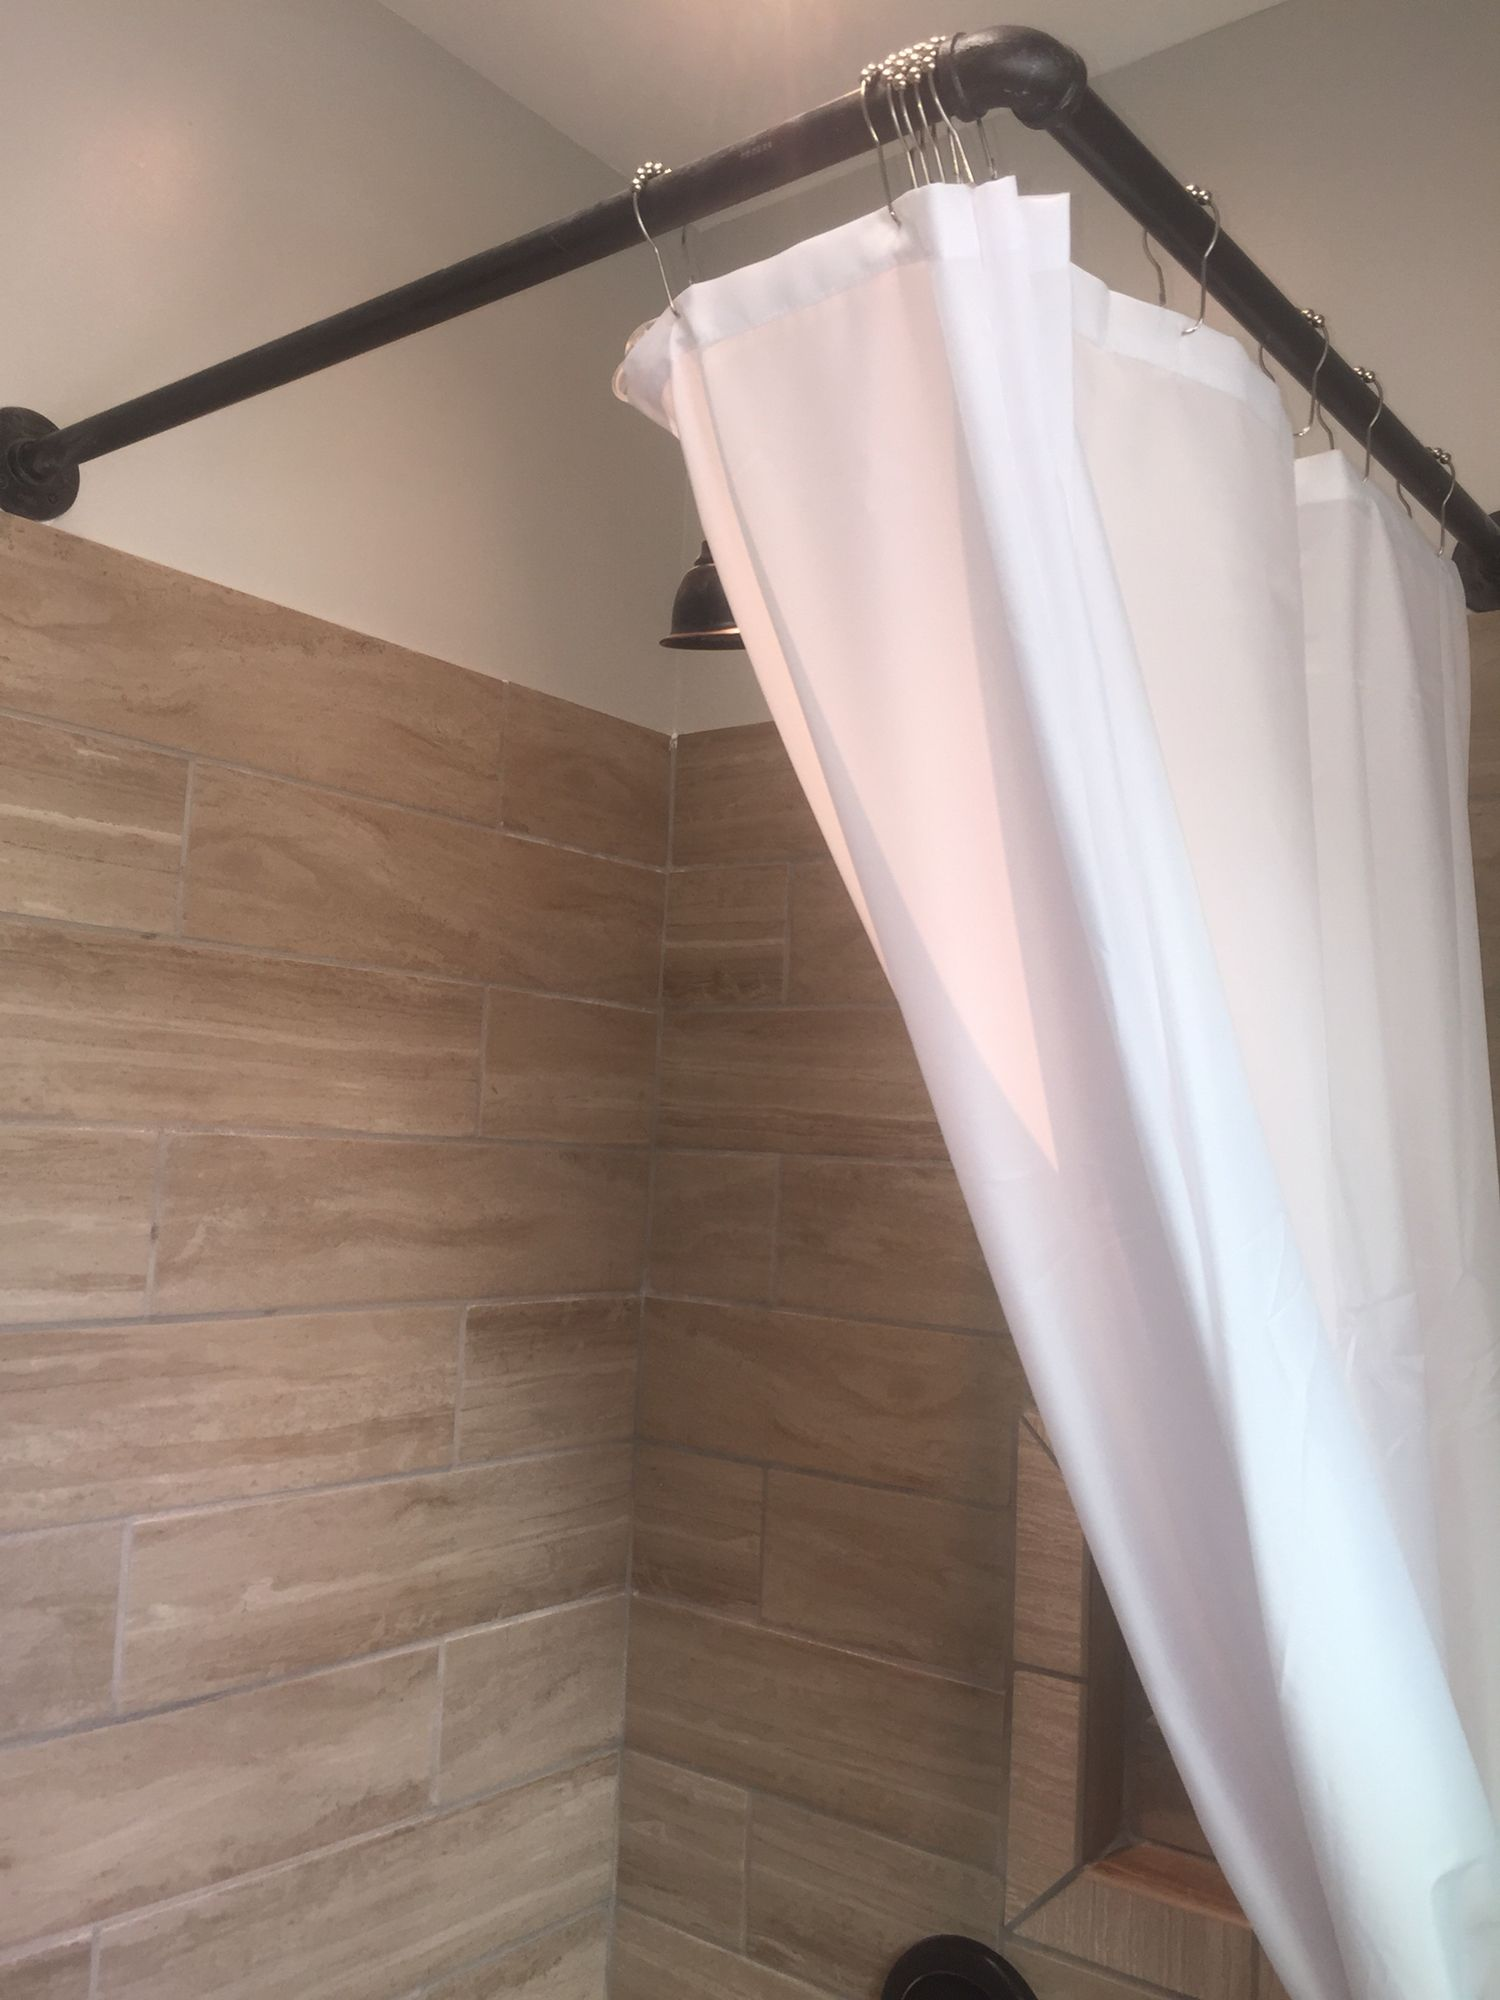 Diy Shower Curtain Rod Corner Shower Curtain Rod Diy Bathroom